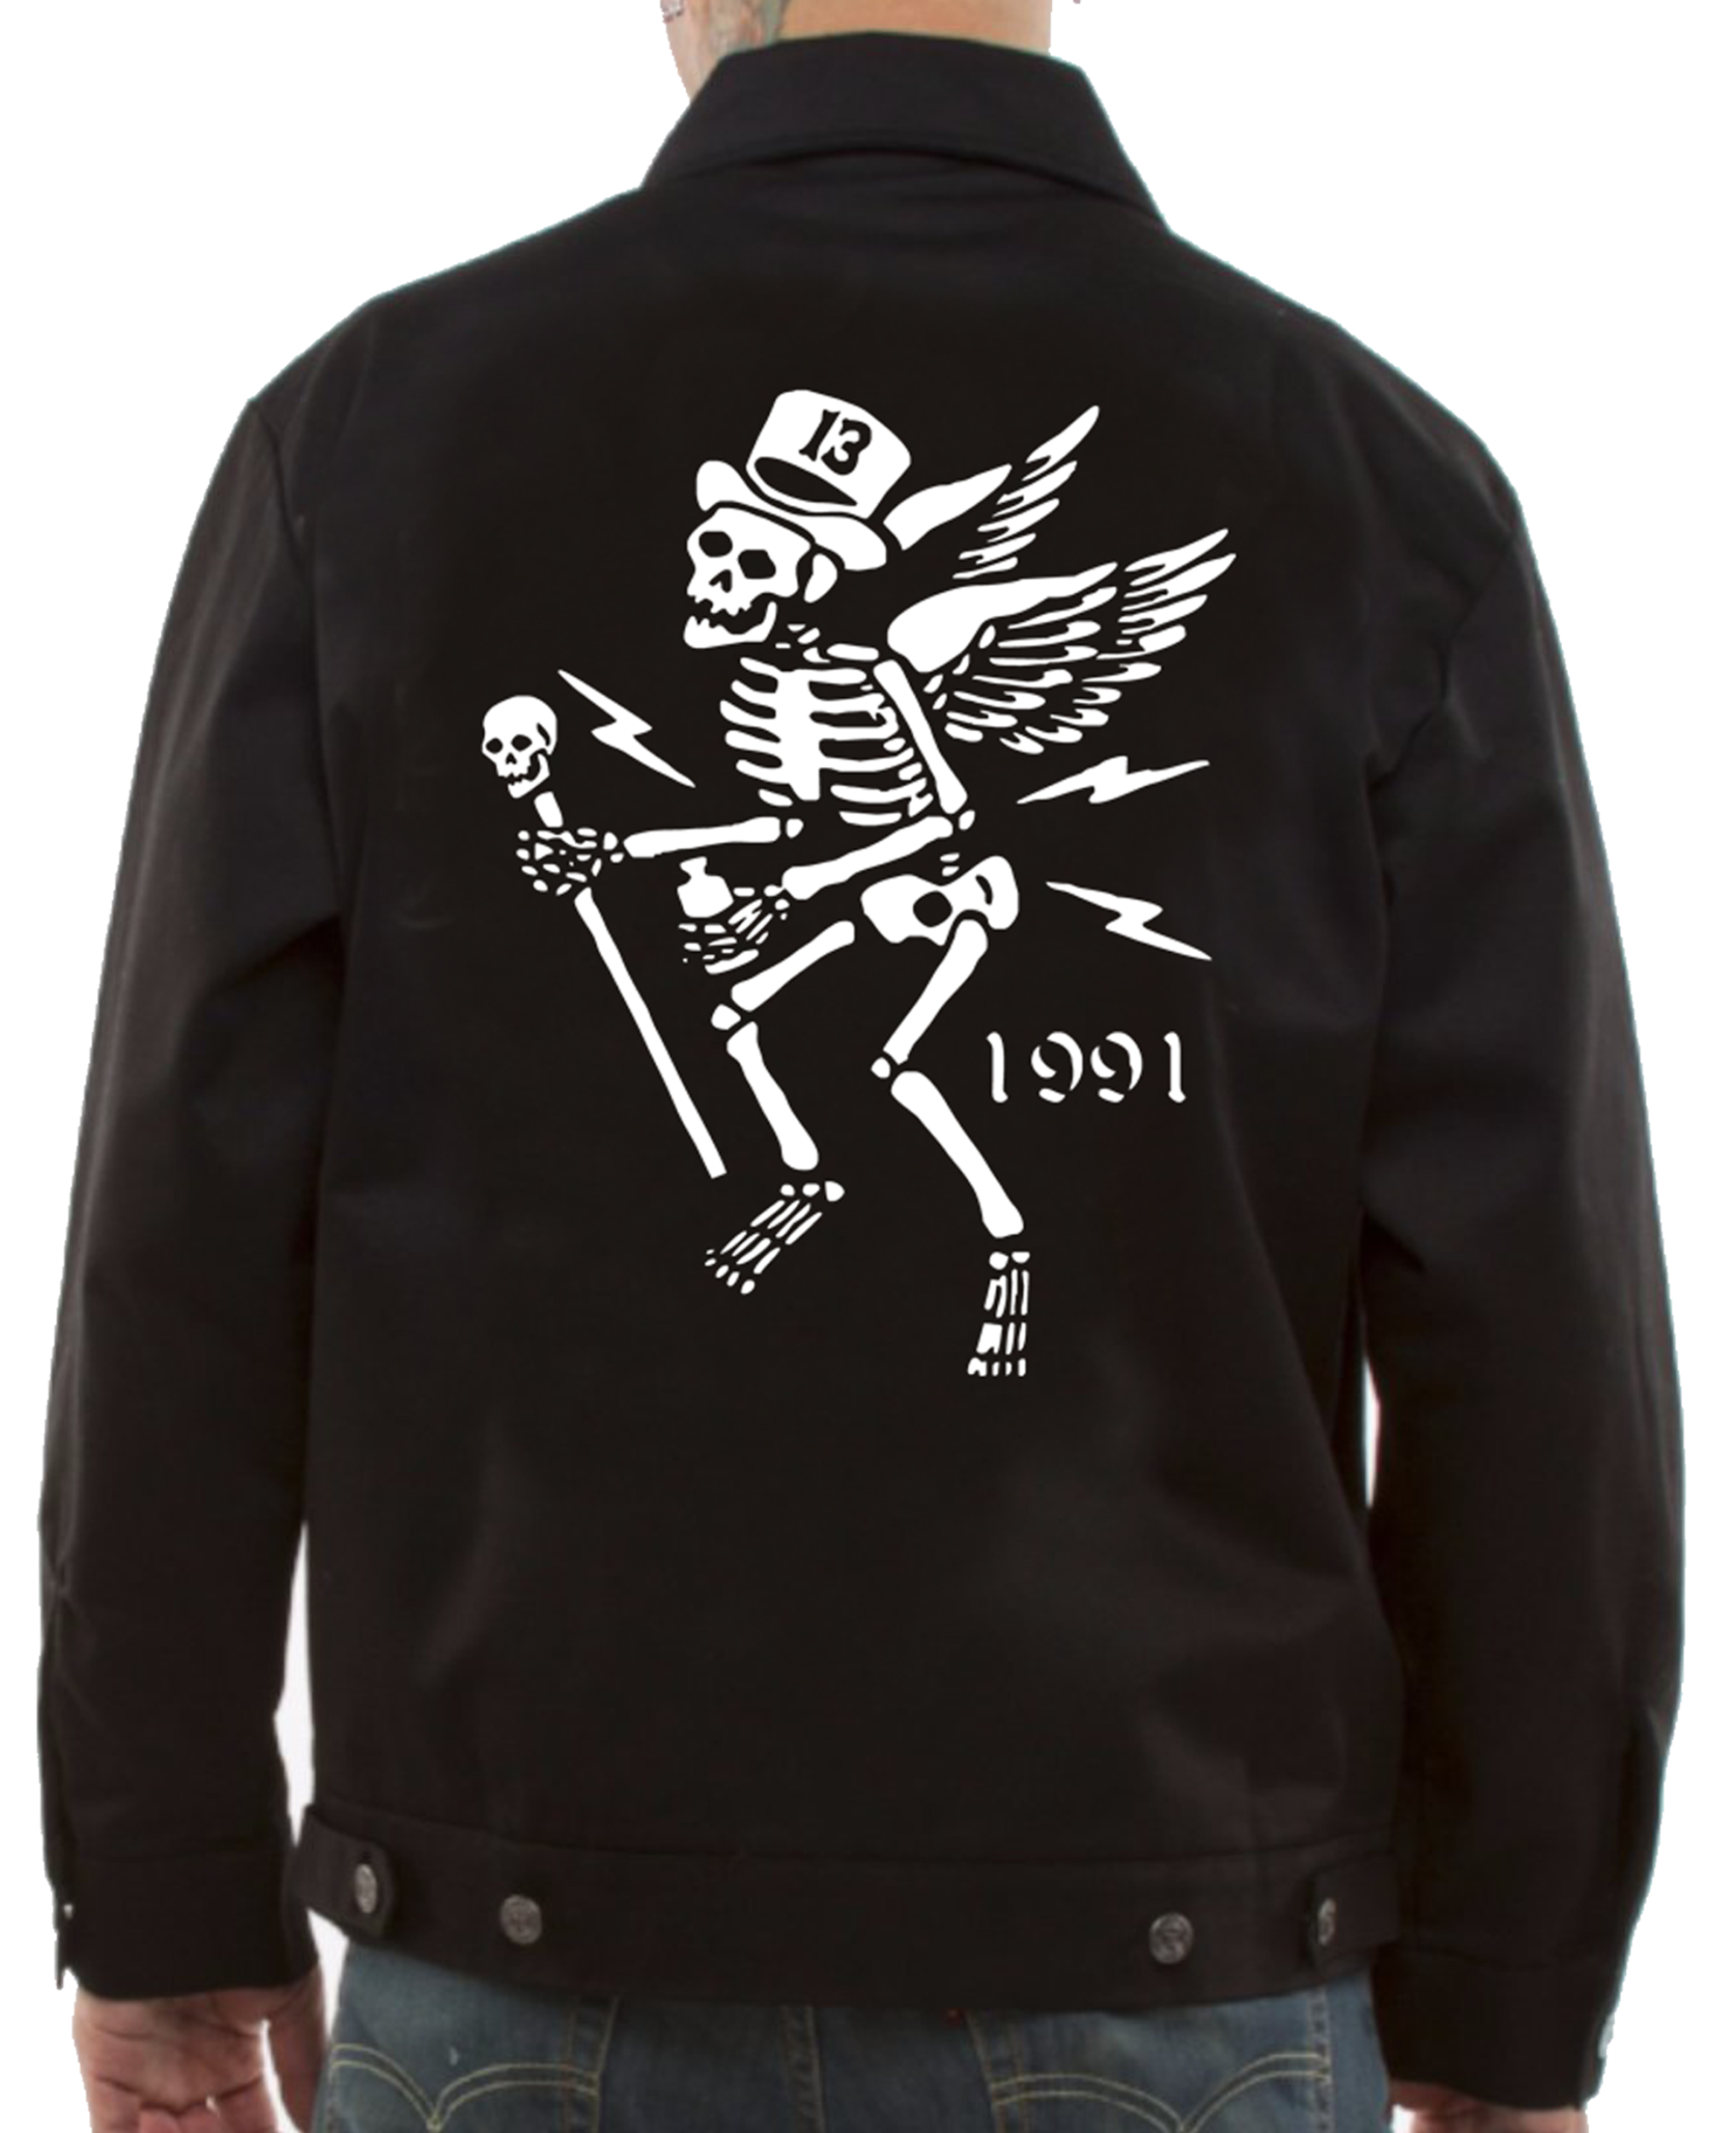 The MR. SKULLY Jacket